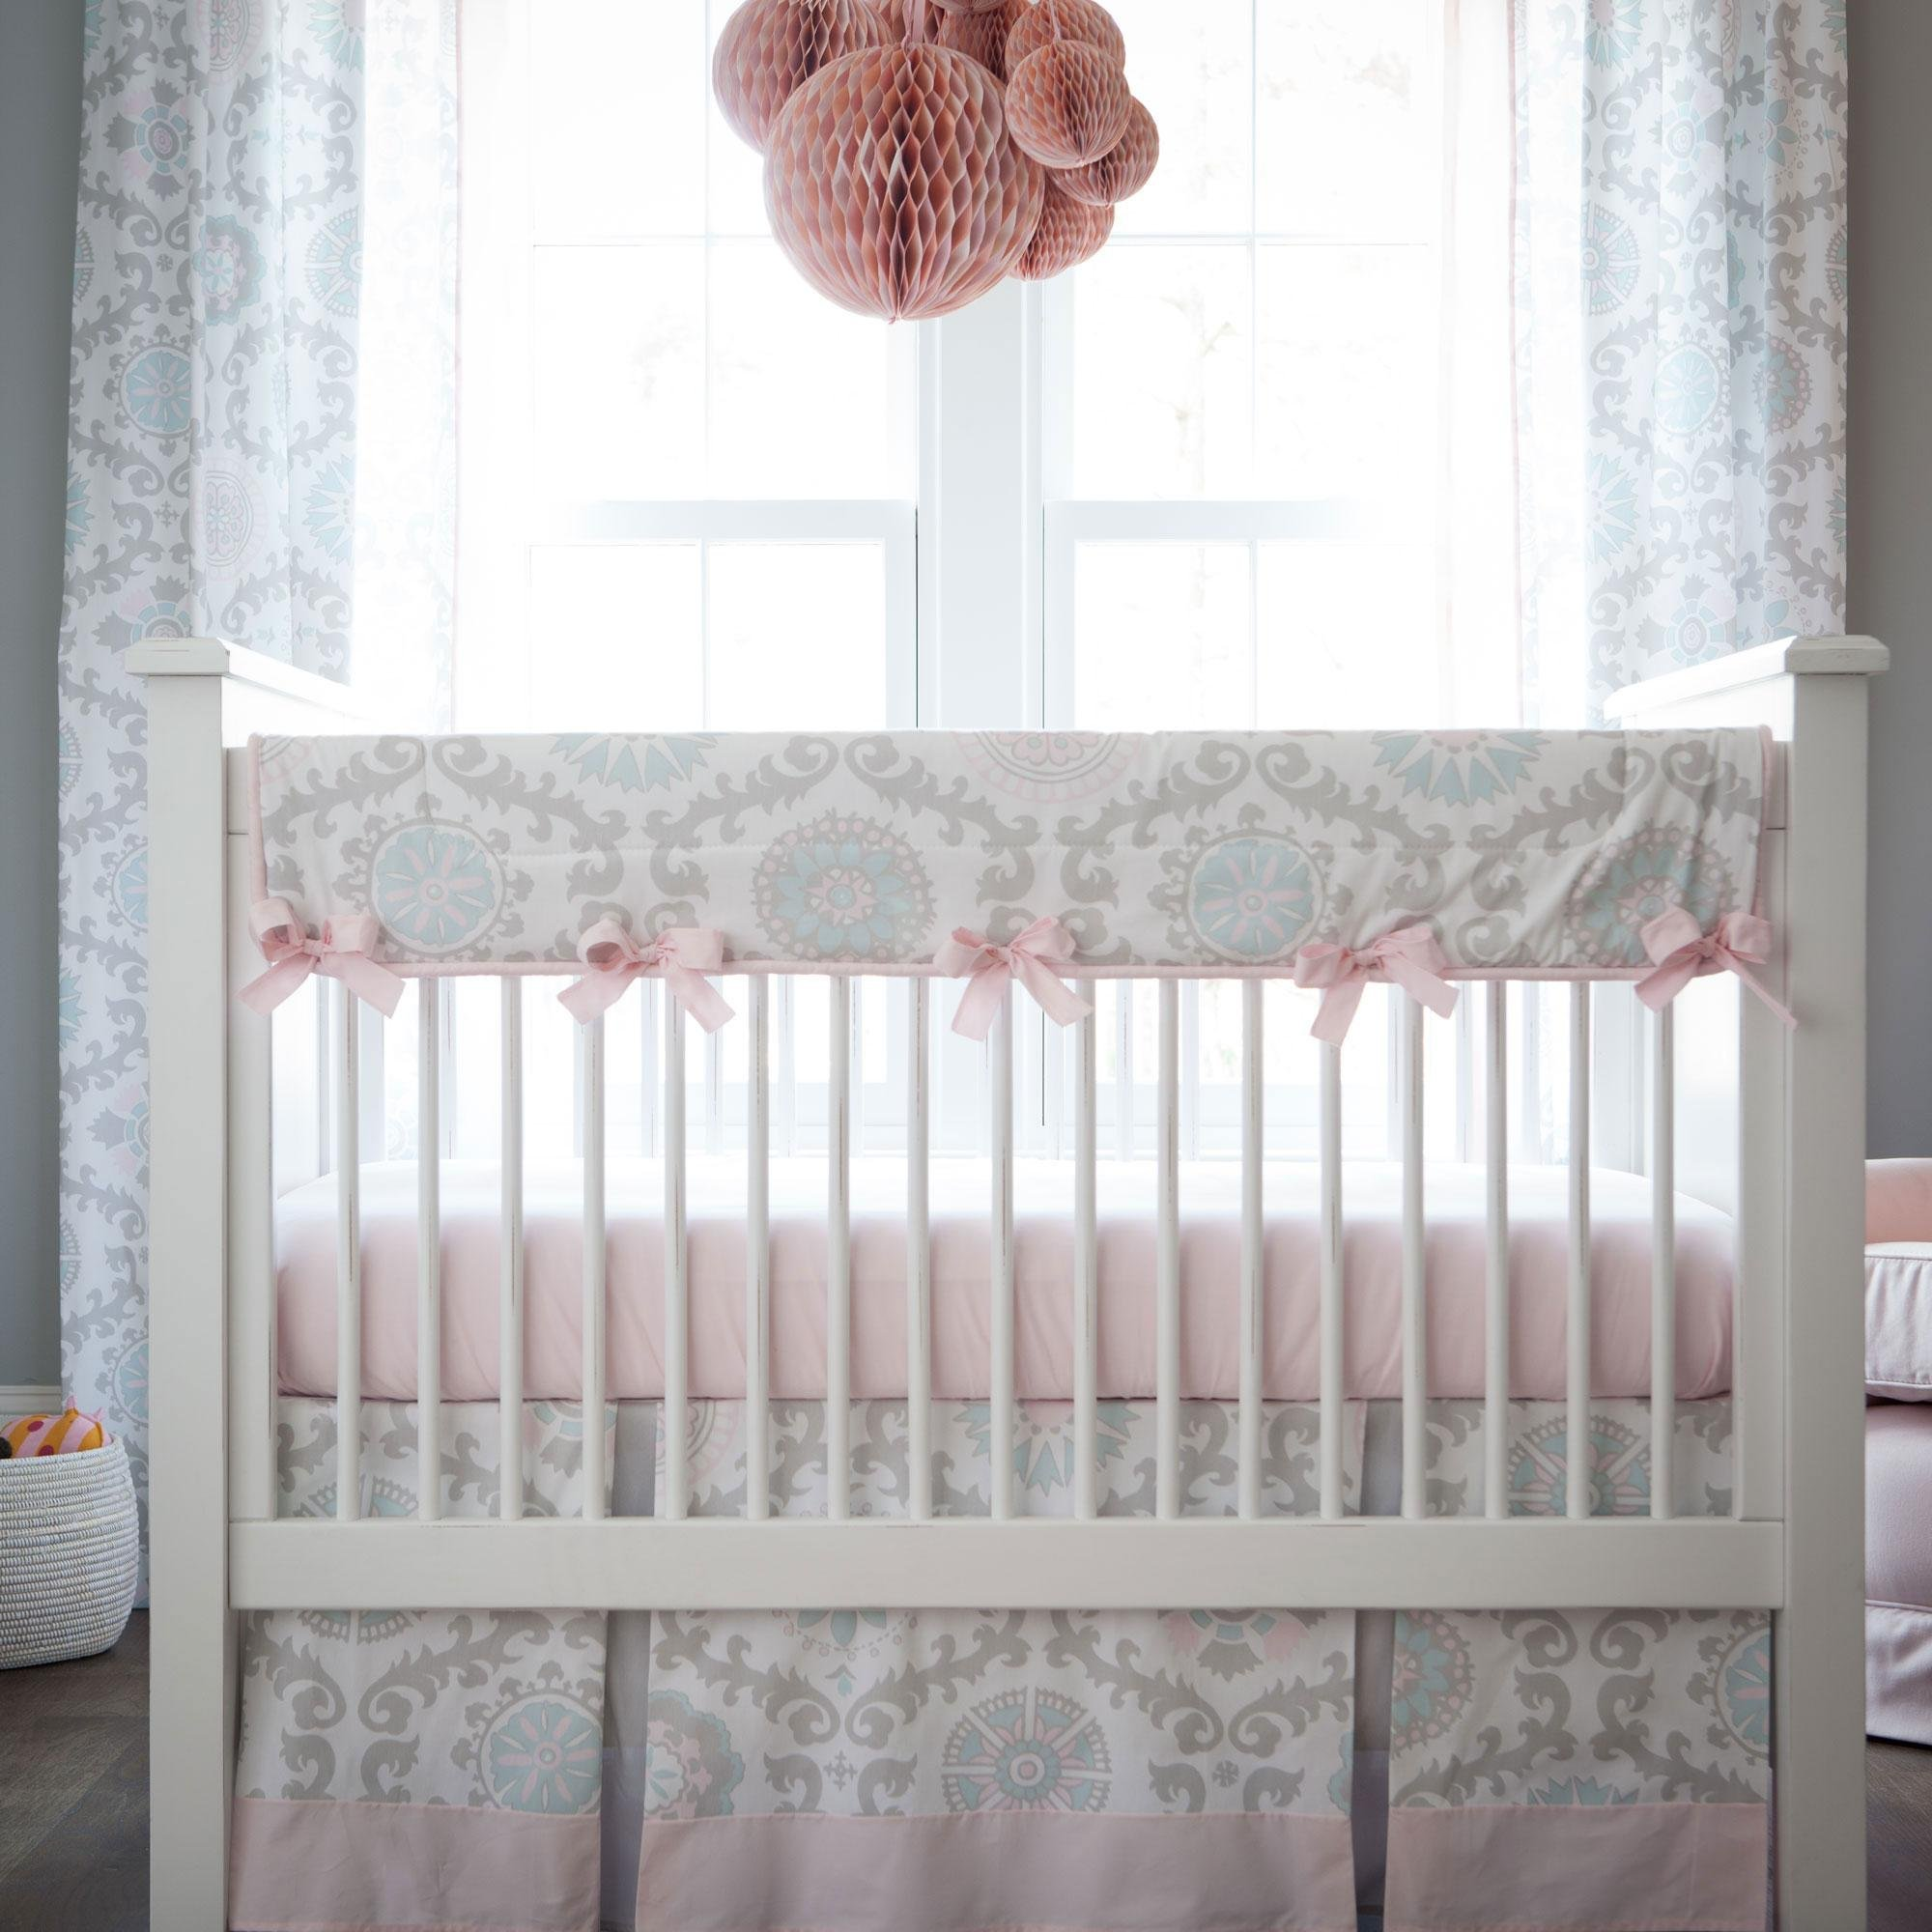 Carousel Designs Pink and Gray Rosa Crib Rail Cover